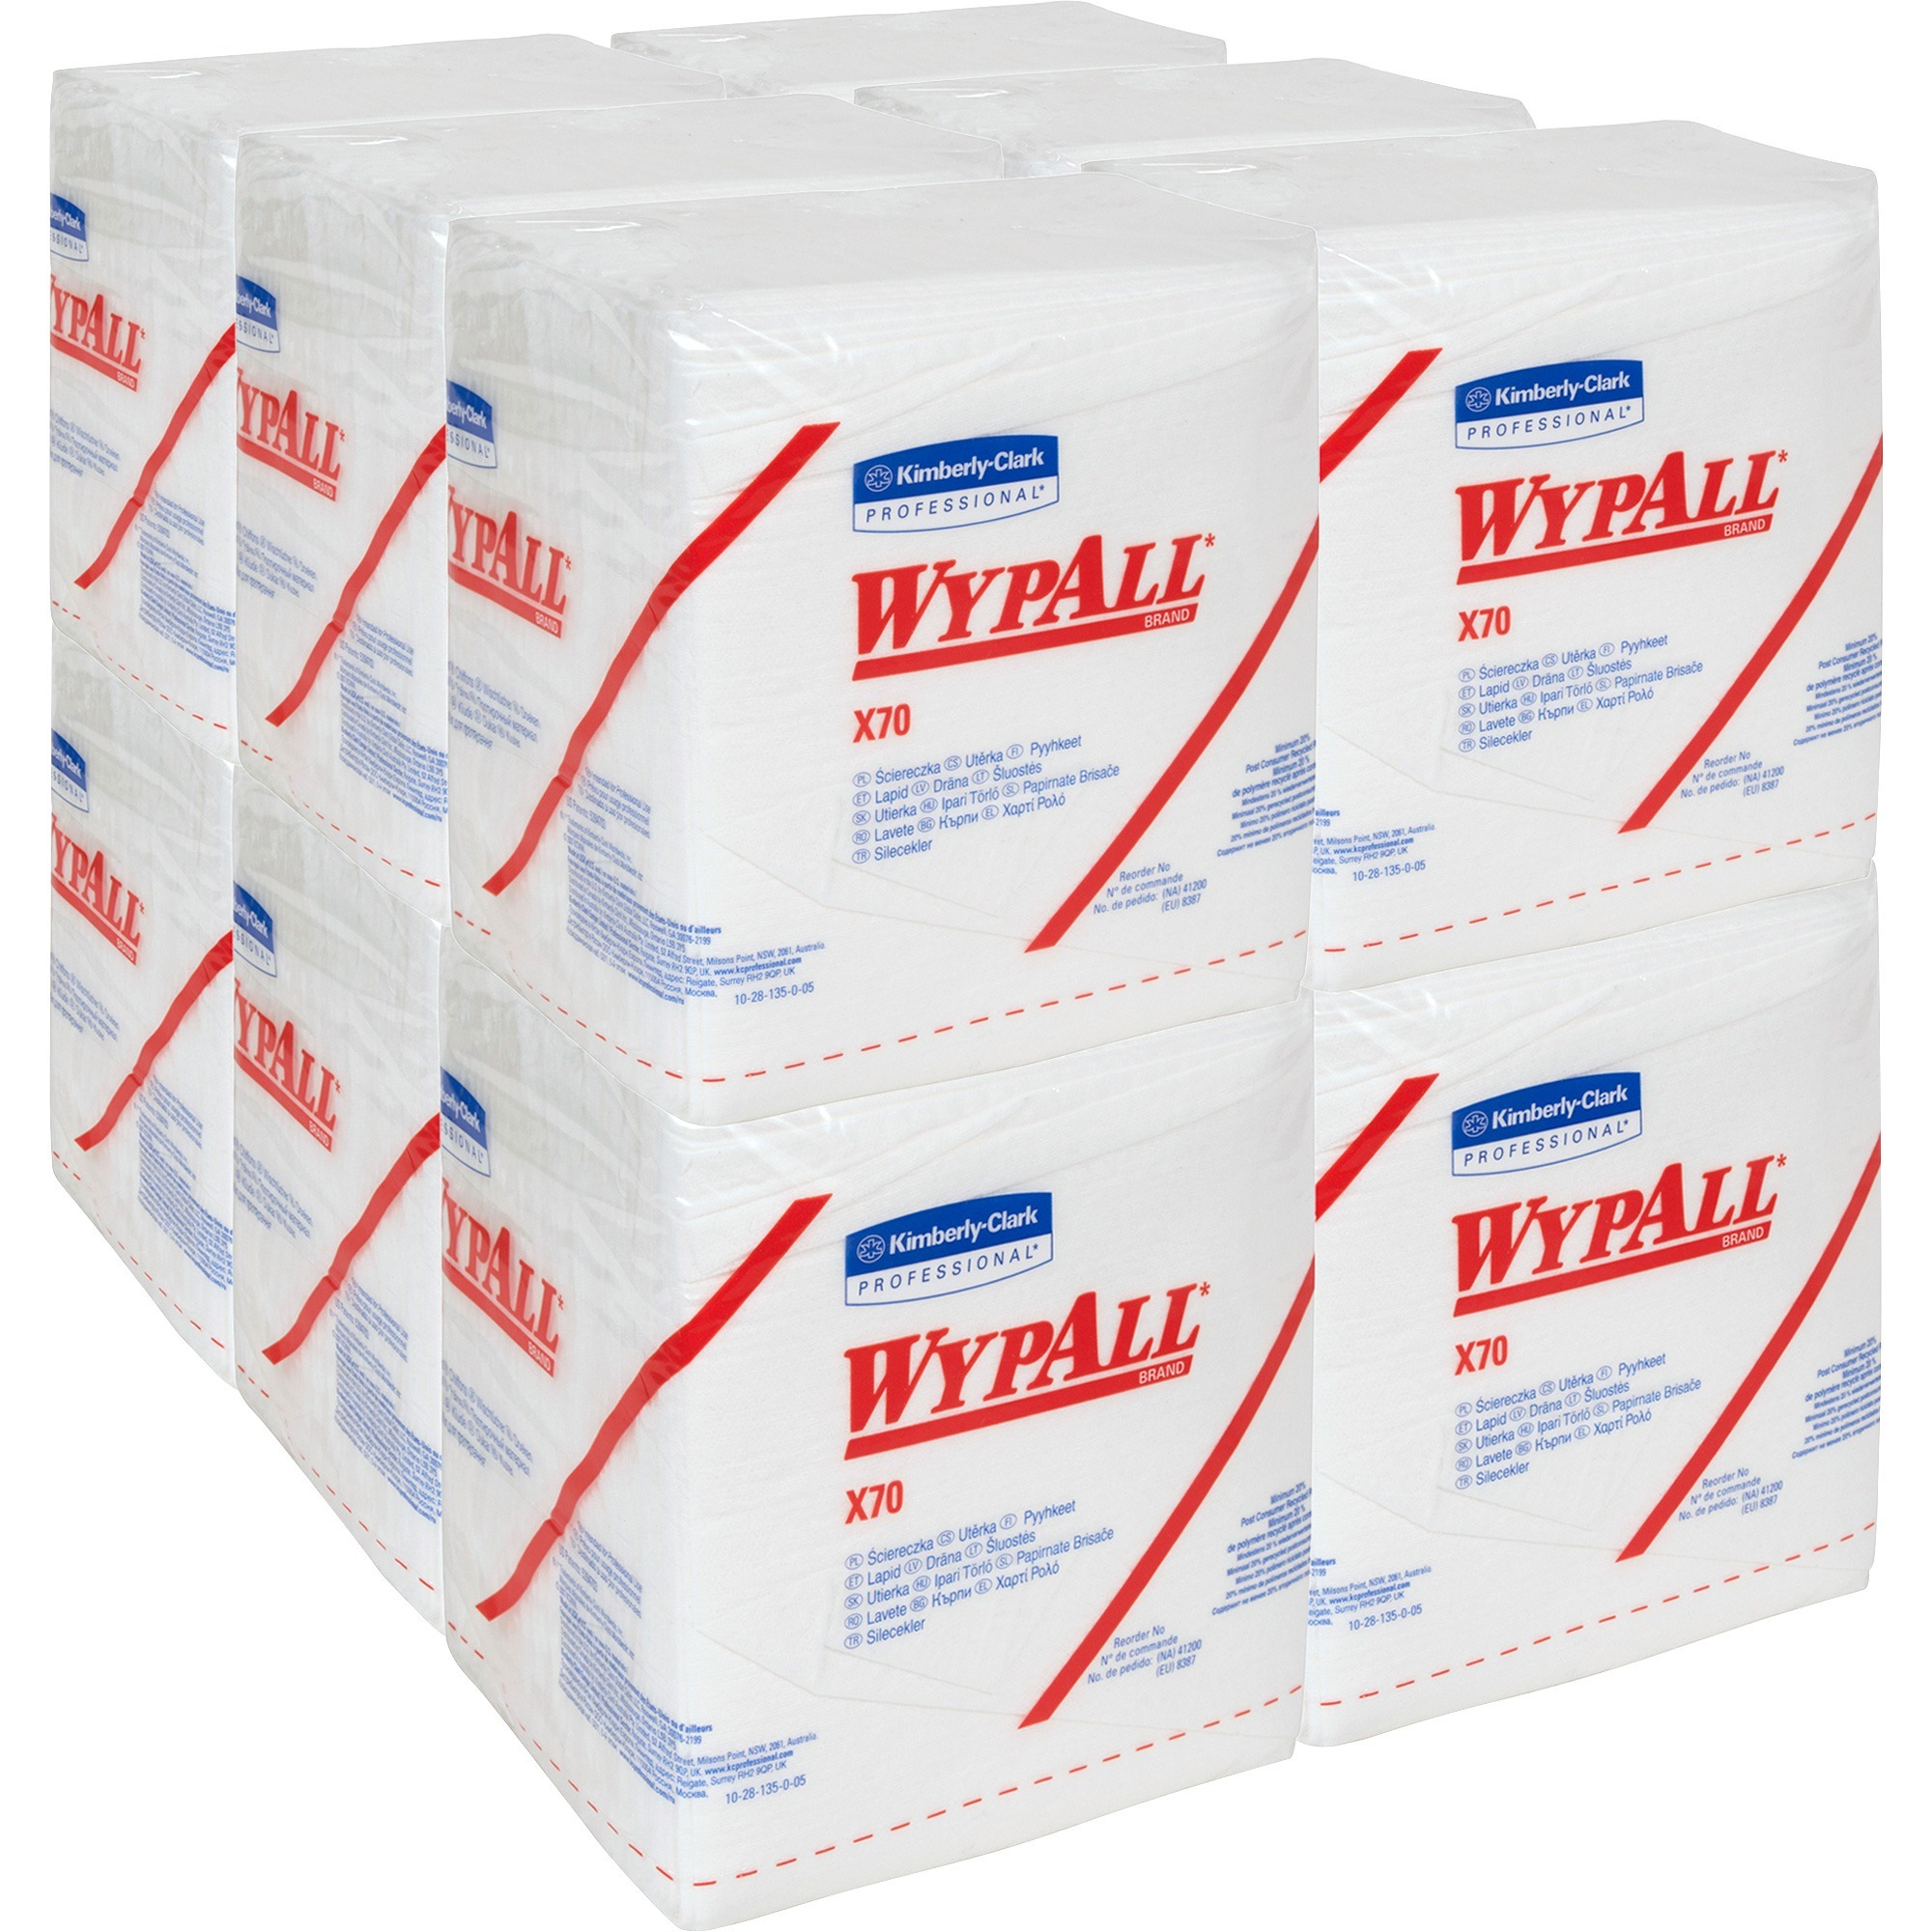 Wypall, KCC41200, X70 Wipers, 12 / Carton, White